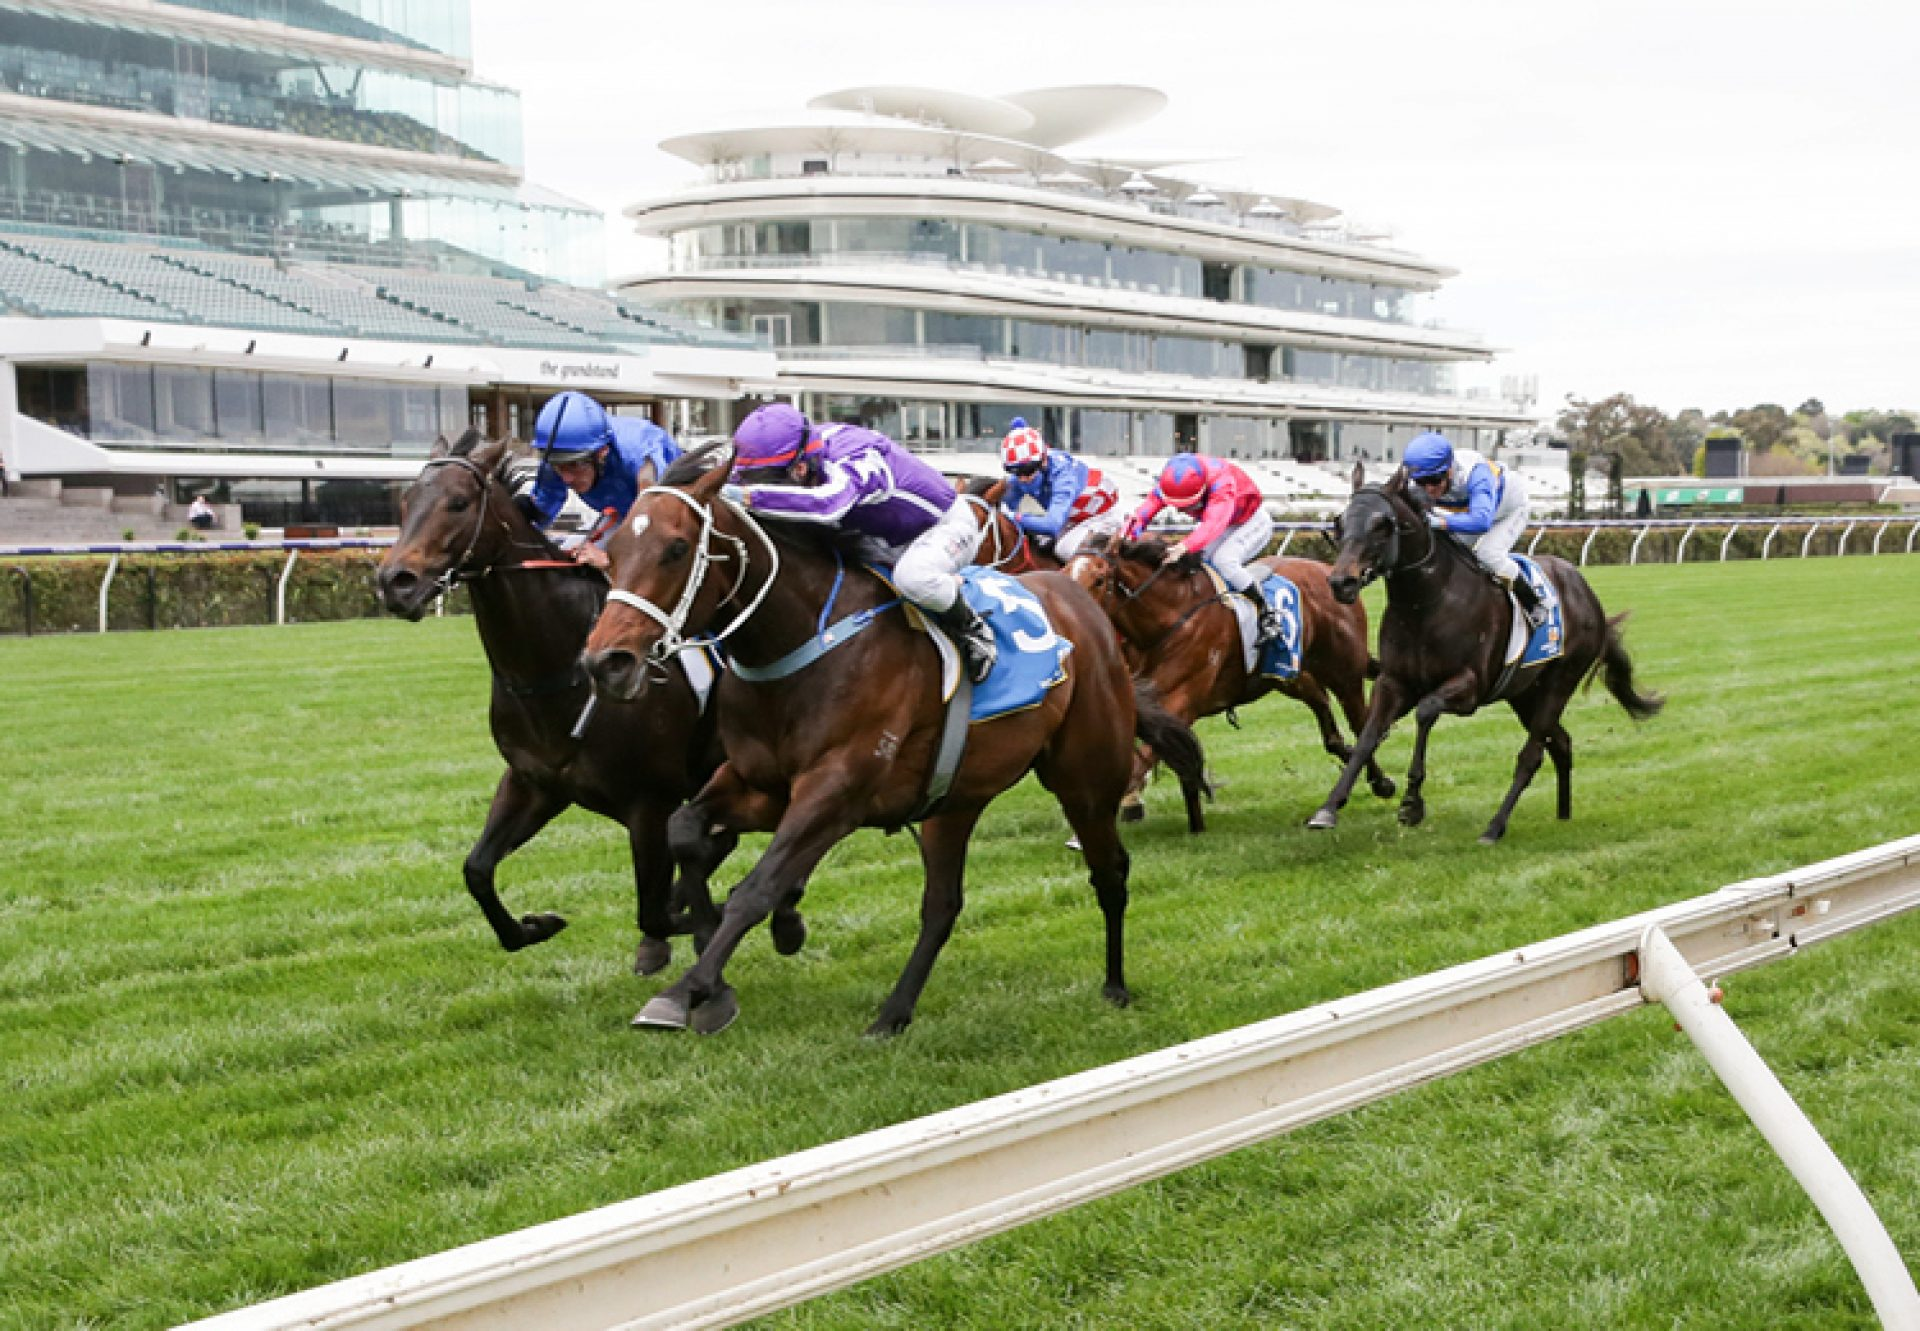 Ranch Hand (Fastnet Rock) winning the Listed Poseidon Stakes at Flemington